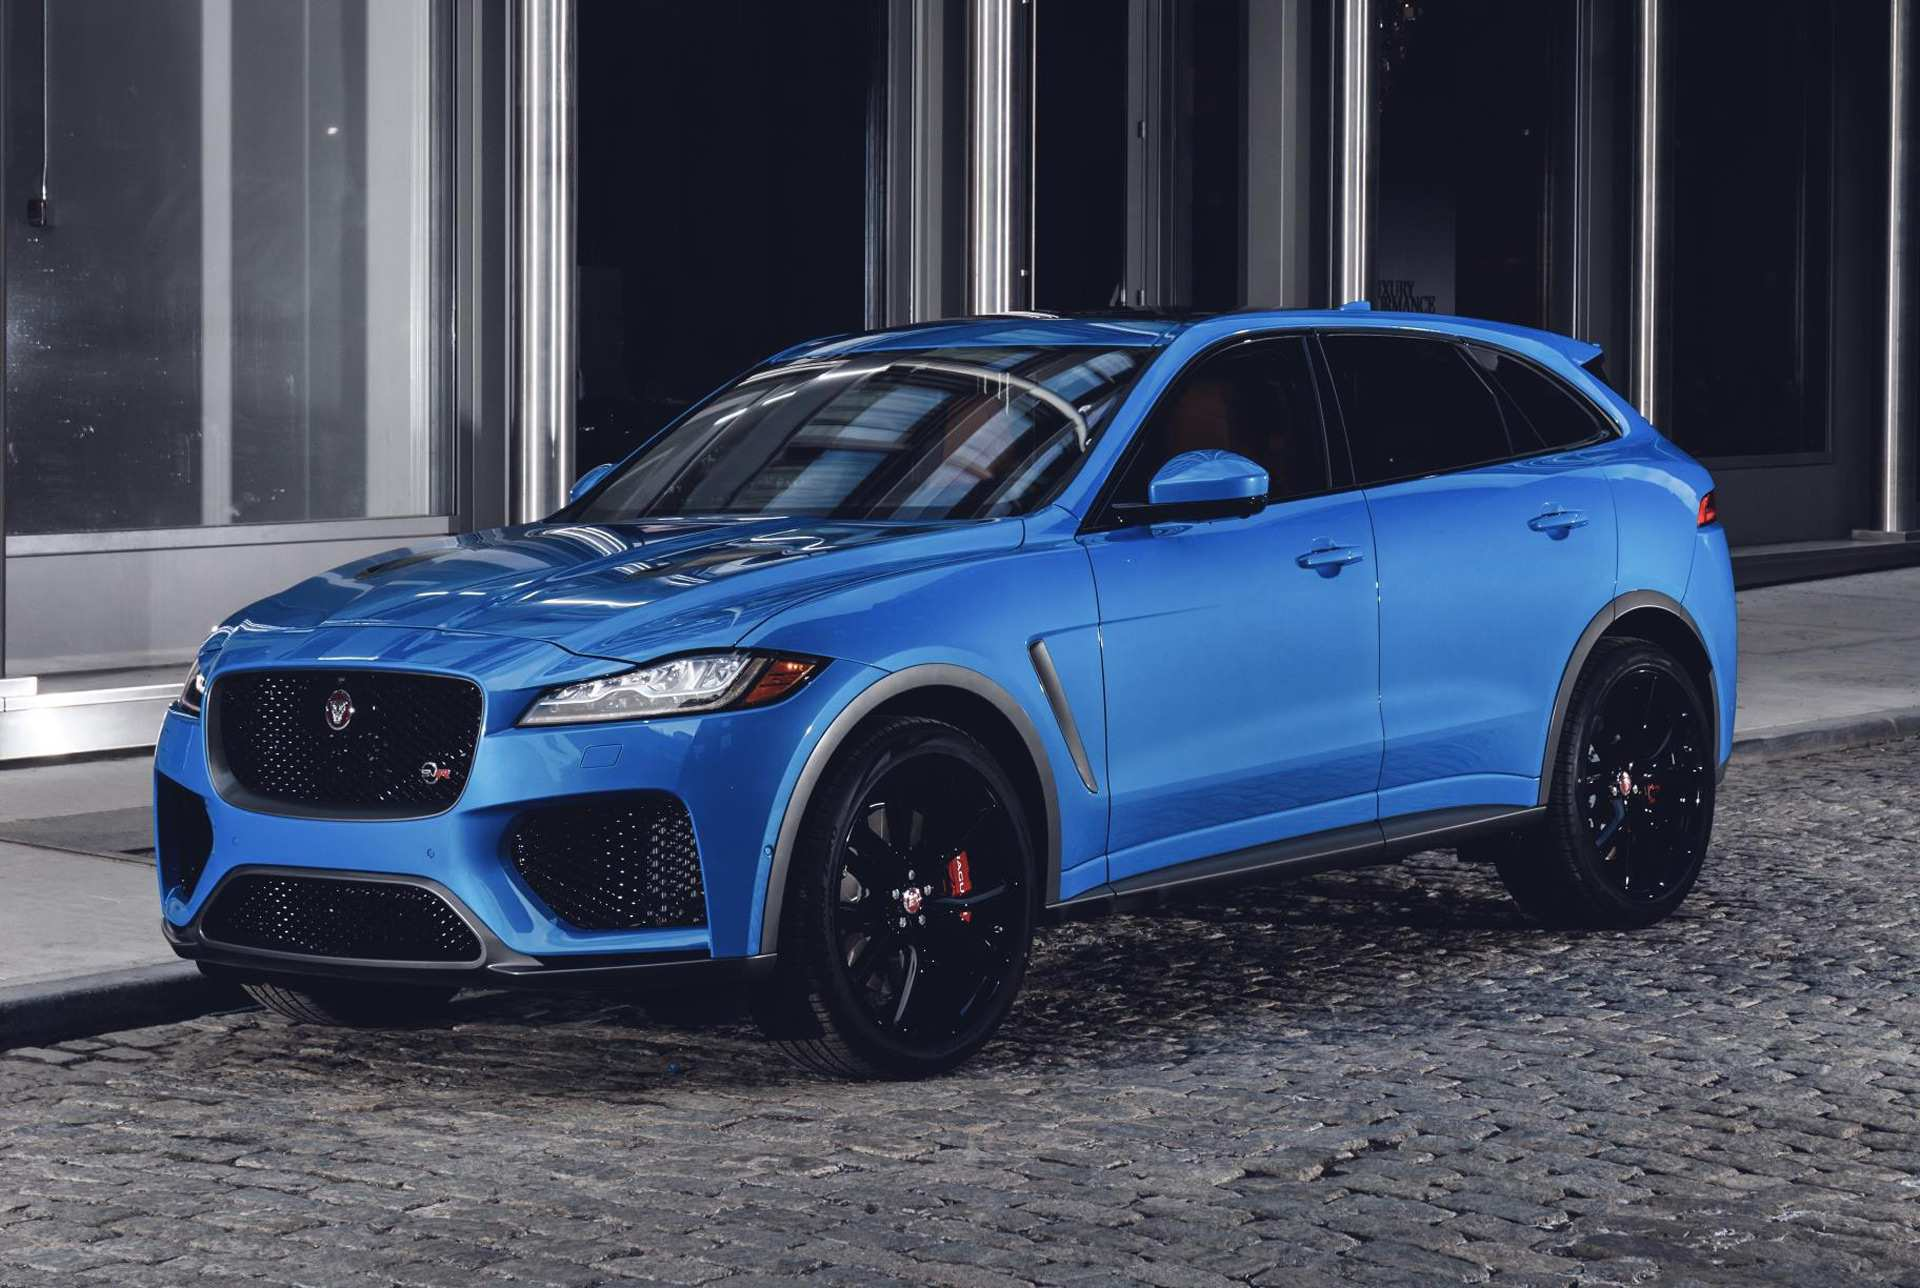 51 The Best 2019 Jaguar I Pace Release Date Price